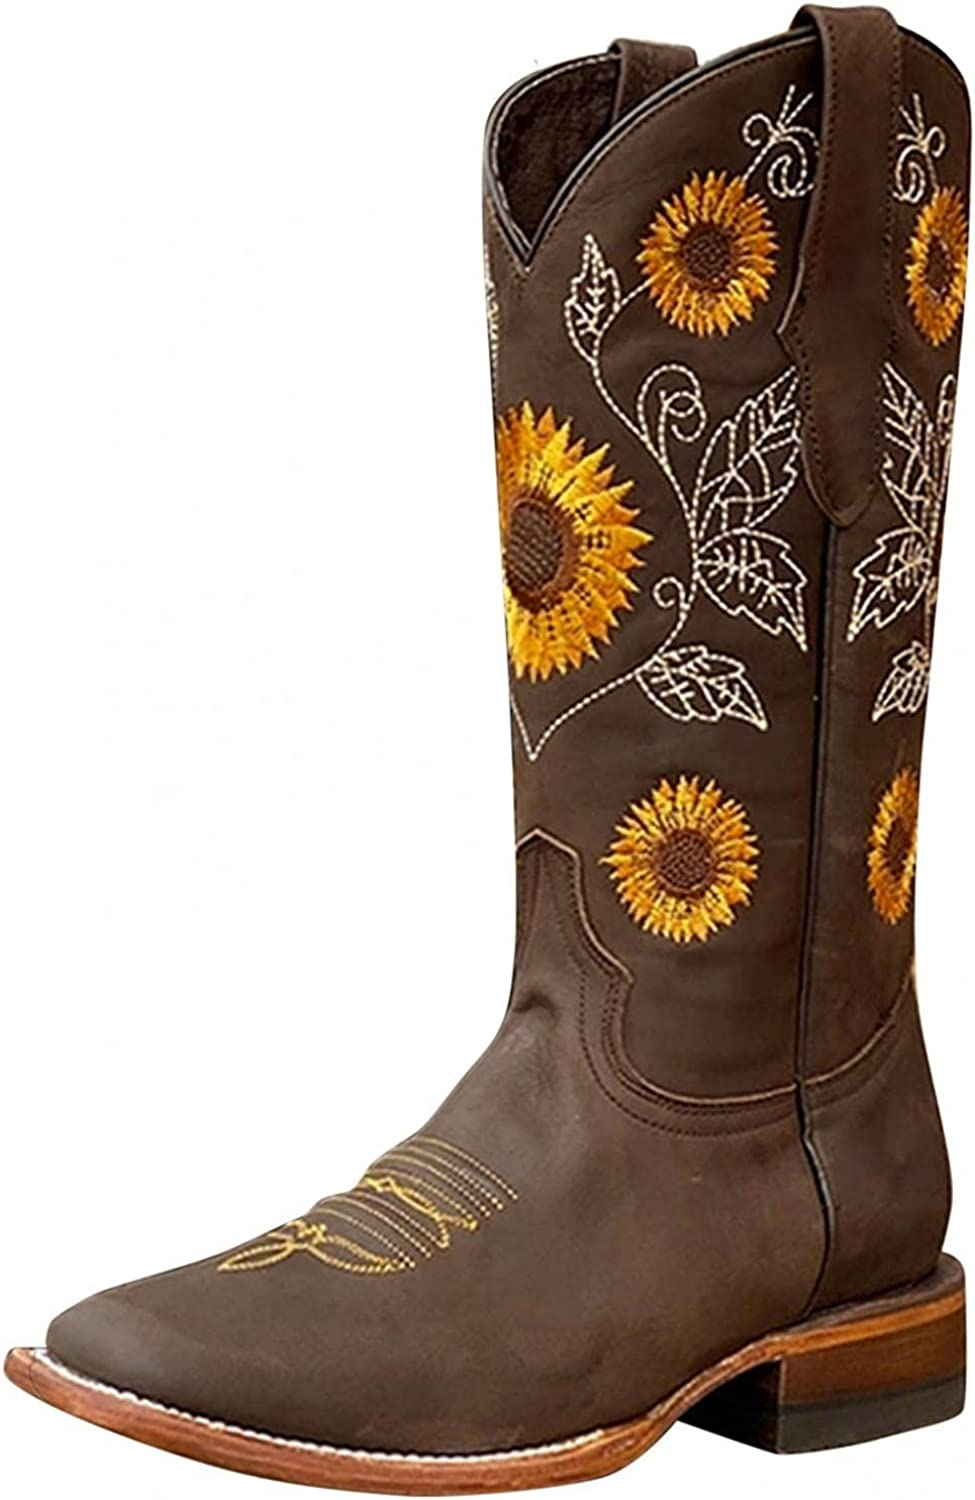 Women's Western Cowboy Boots Cowgirl Boots Women Sunflowers Retro Print Embroidery Mid Calf Thick Heel Pull On Short Boots